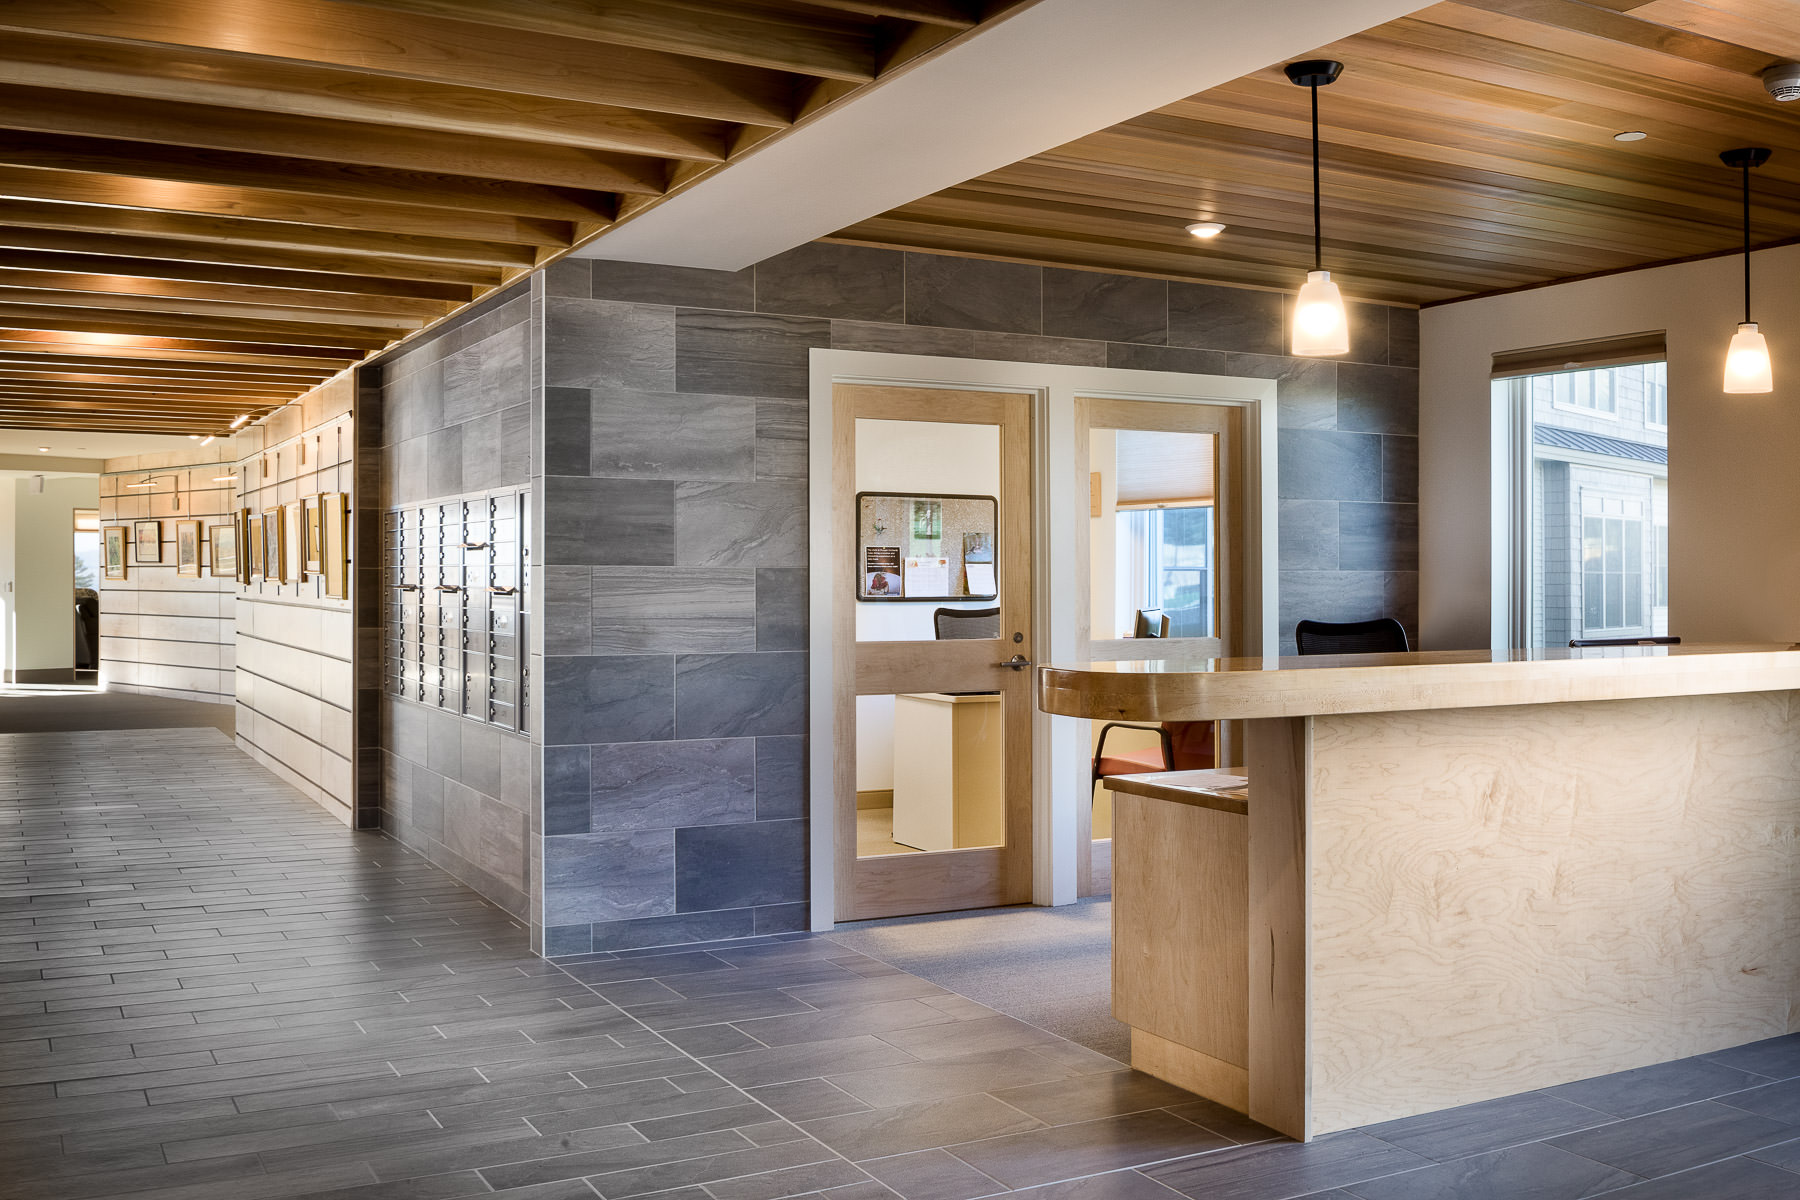 Architectural photo of the main lobby in the Strode Independent Living Facility in Randolph by Vermont commercial photographer Stina Booth